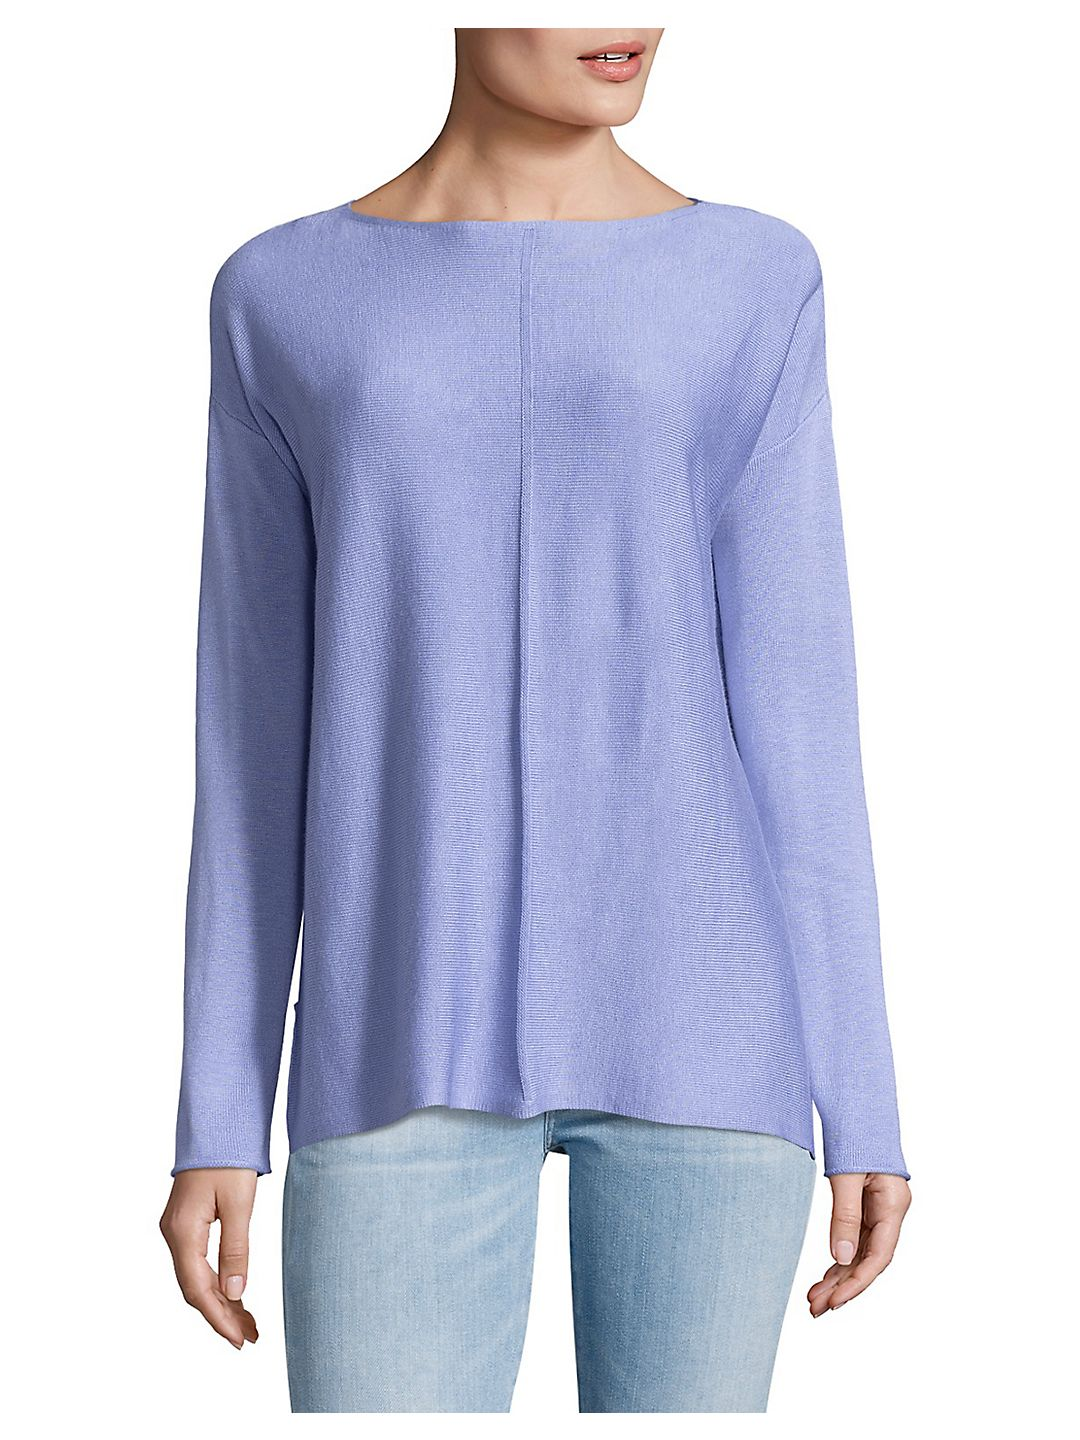 Heathered Hi-Lo Top